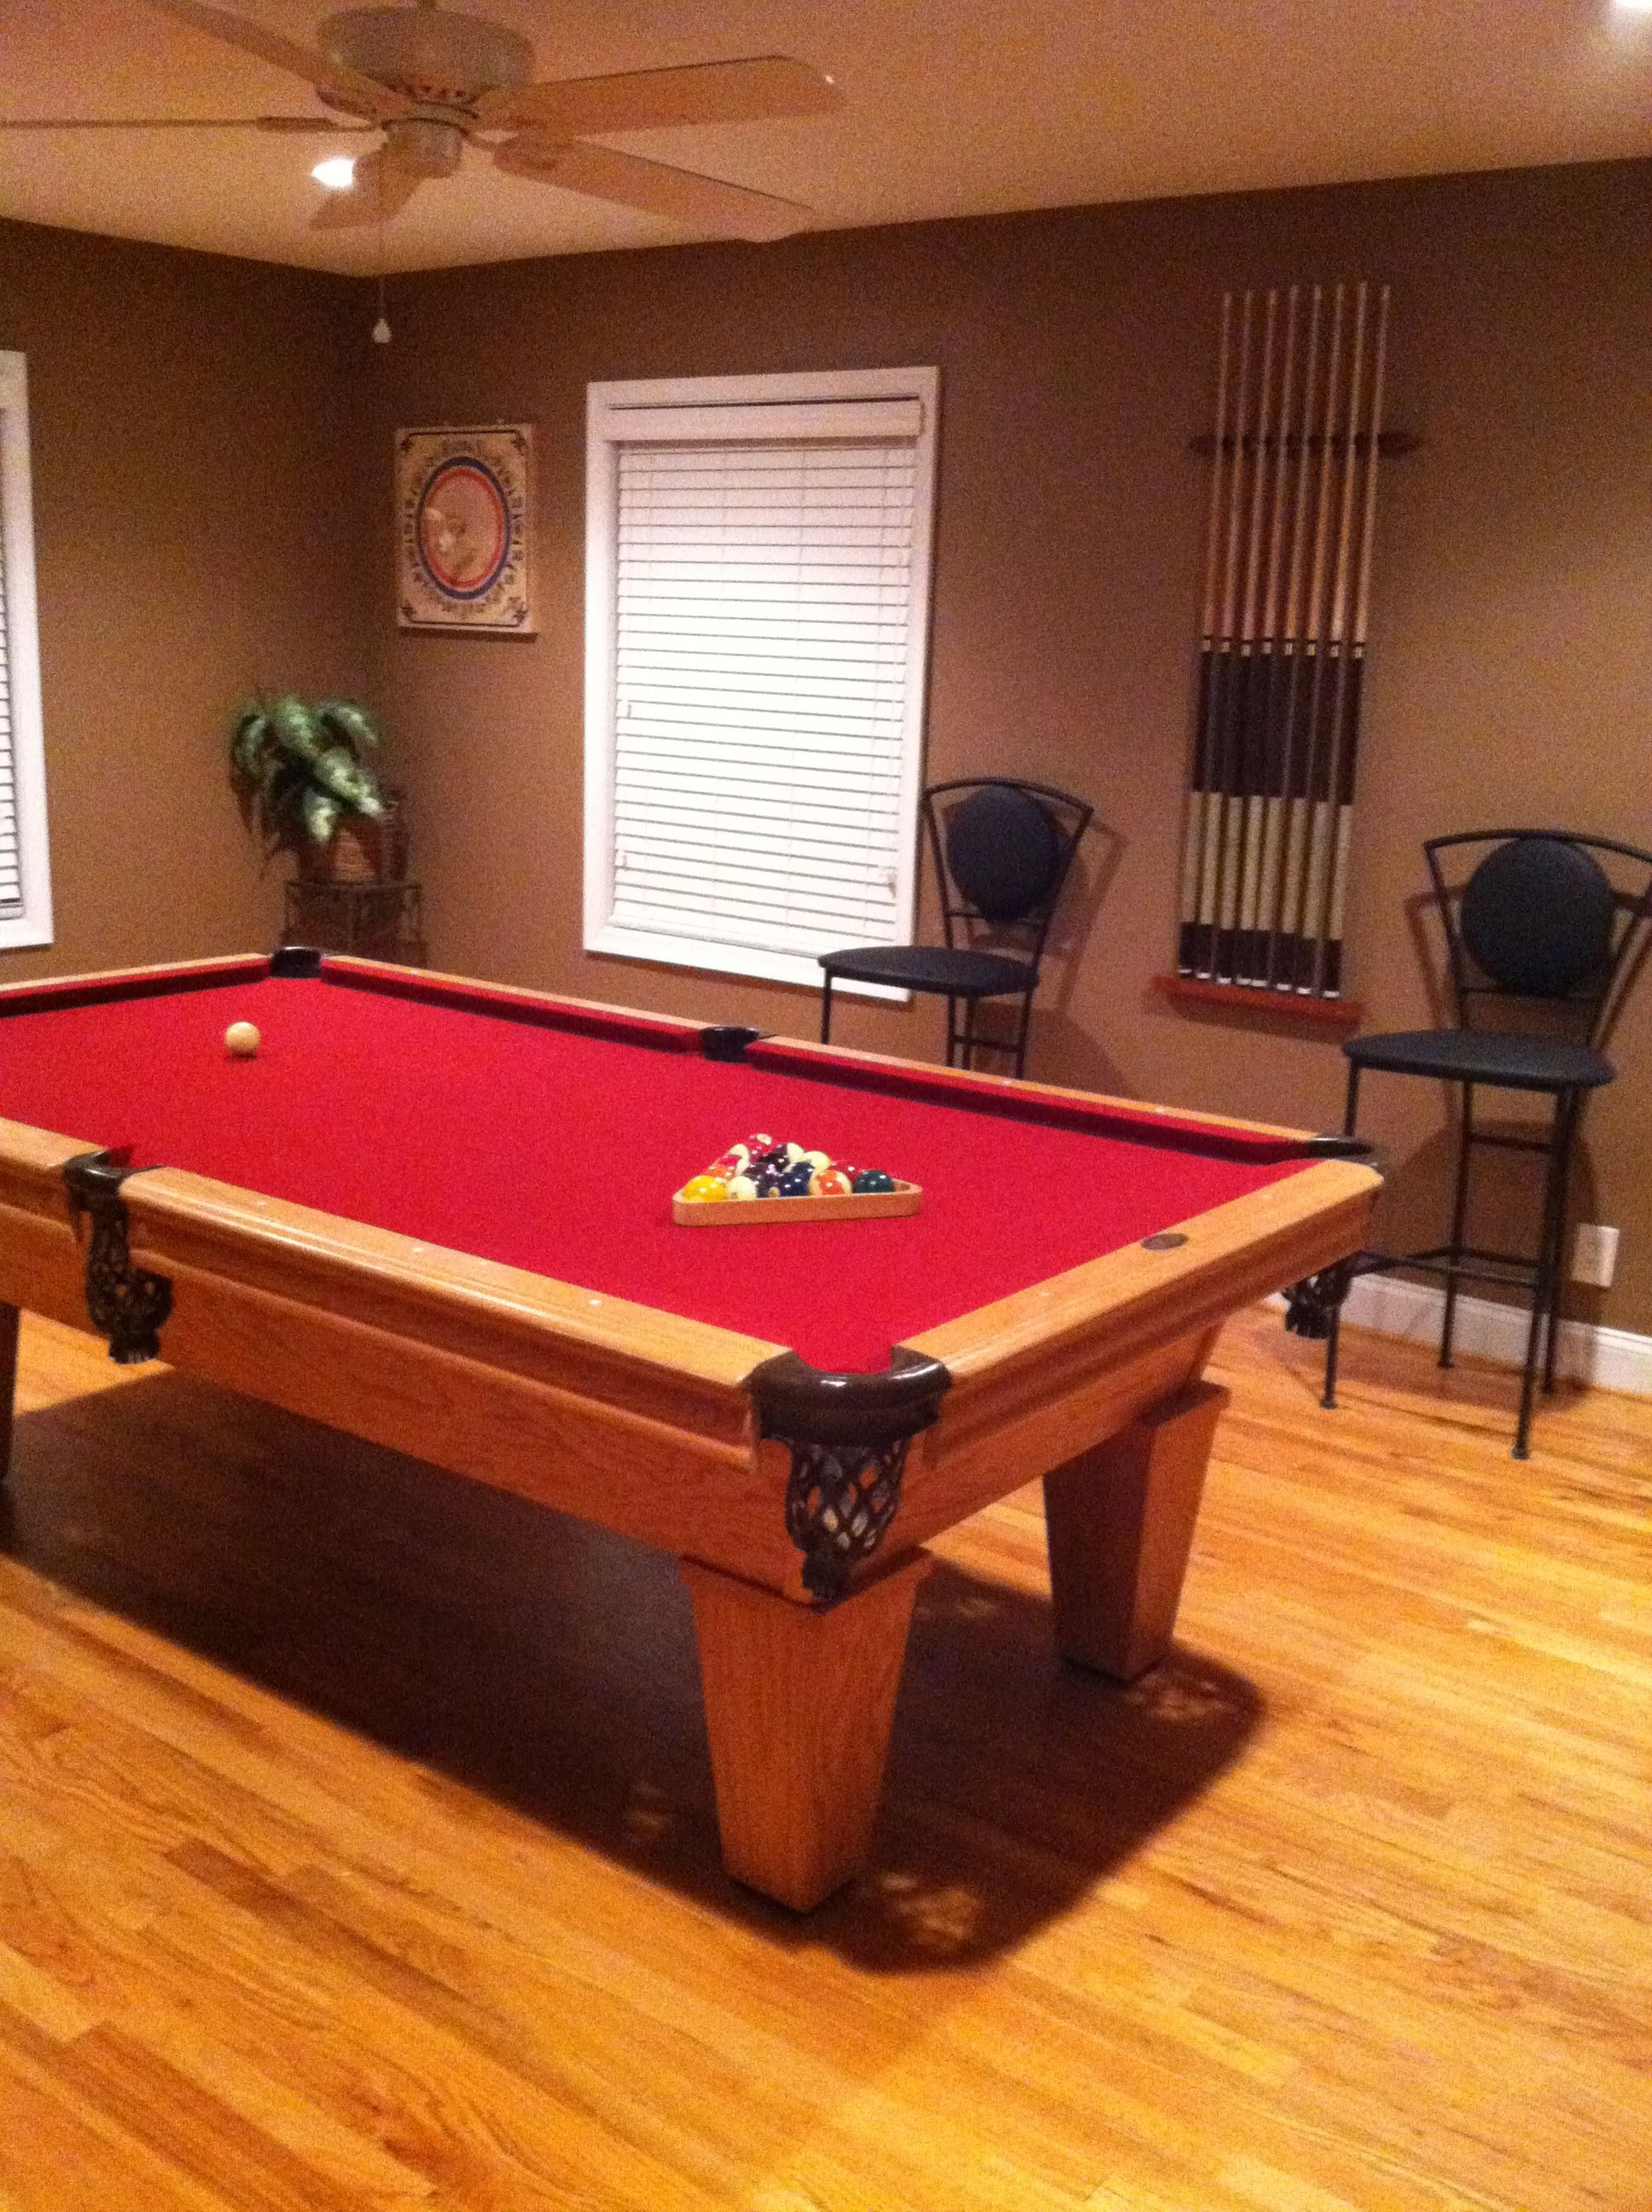 Pin By Tara Geisel On Home Ideas Pool Table Room Small Game Rooms Game Room Basement